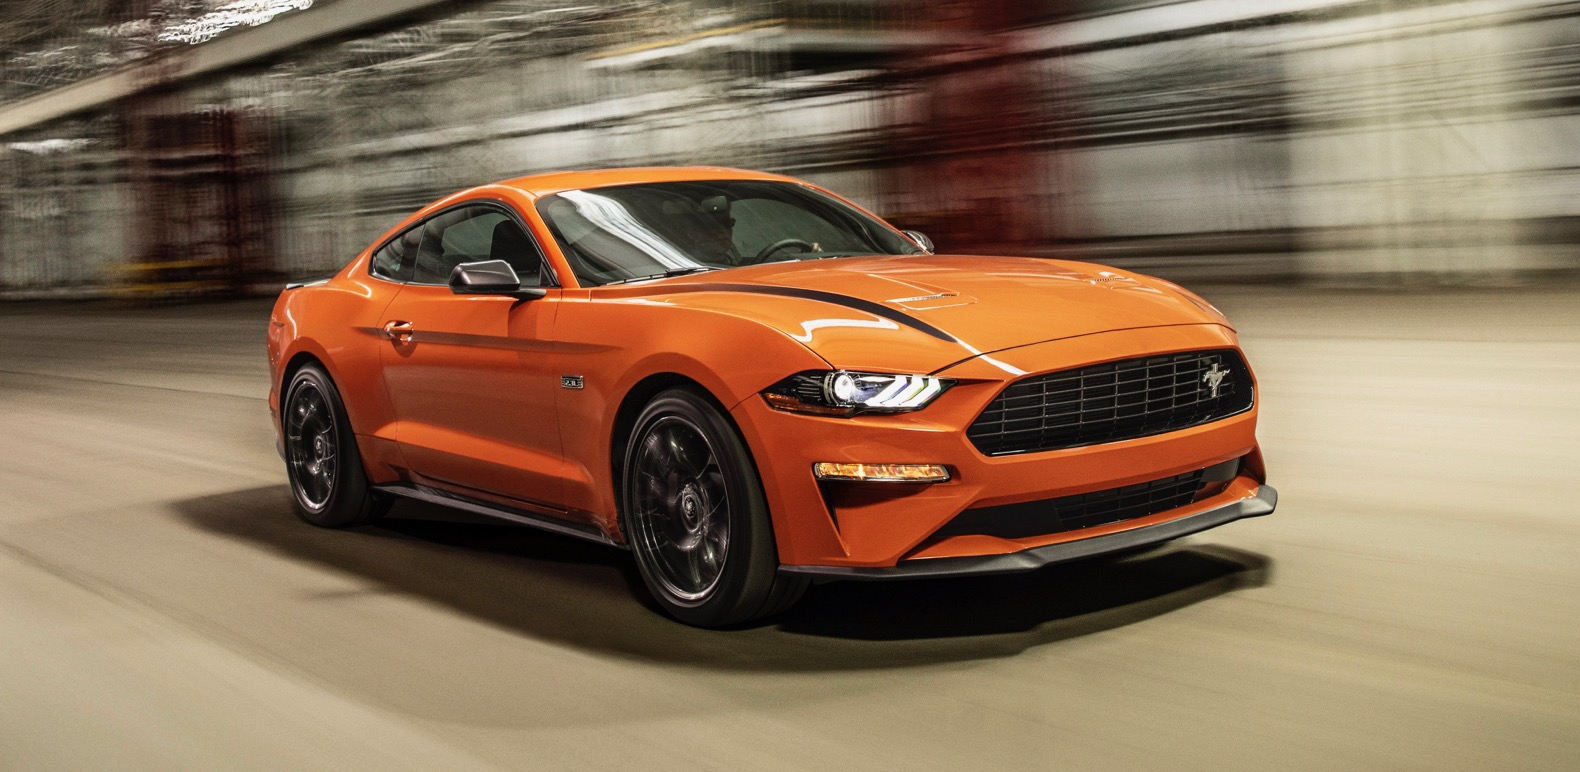 2022 Ford Mustang News